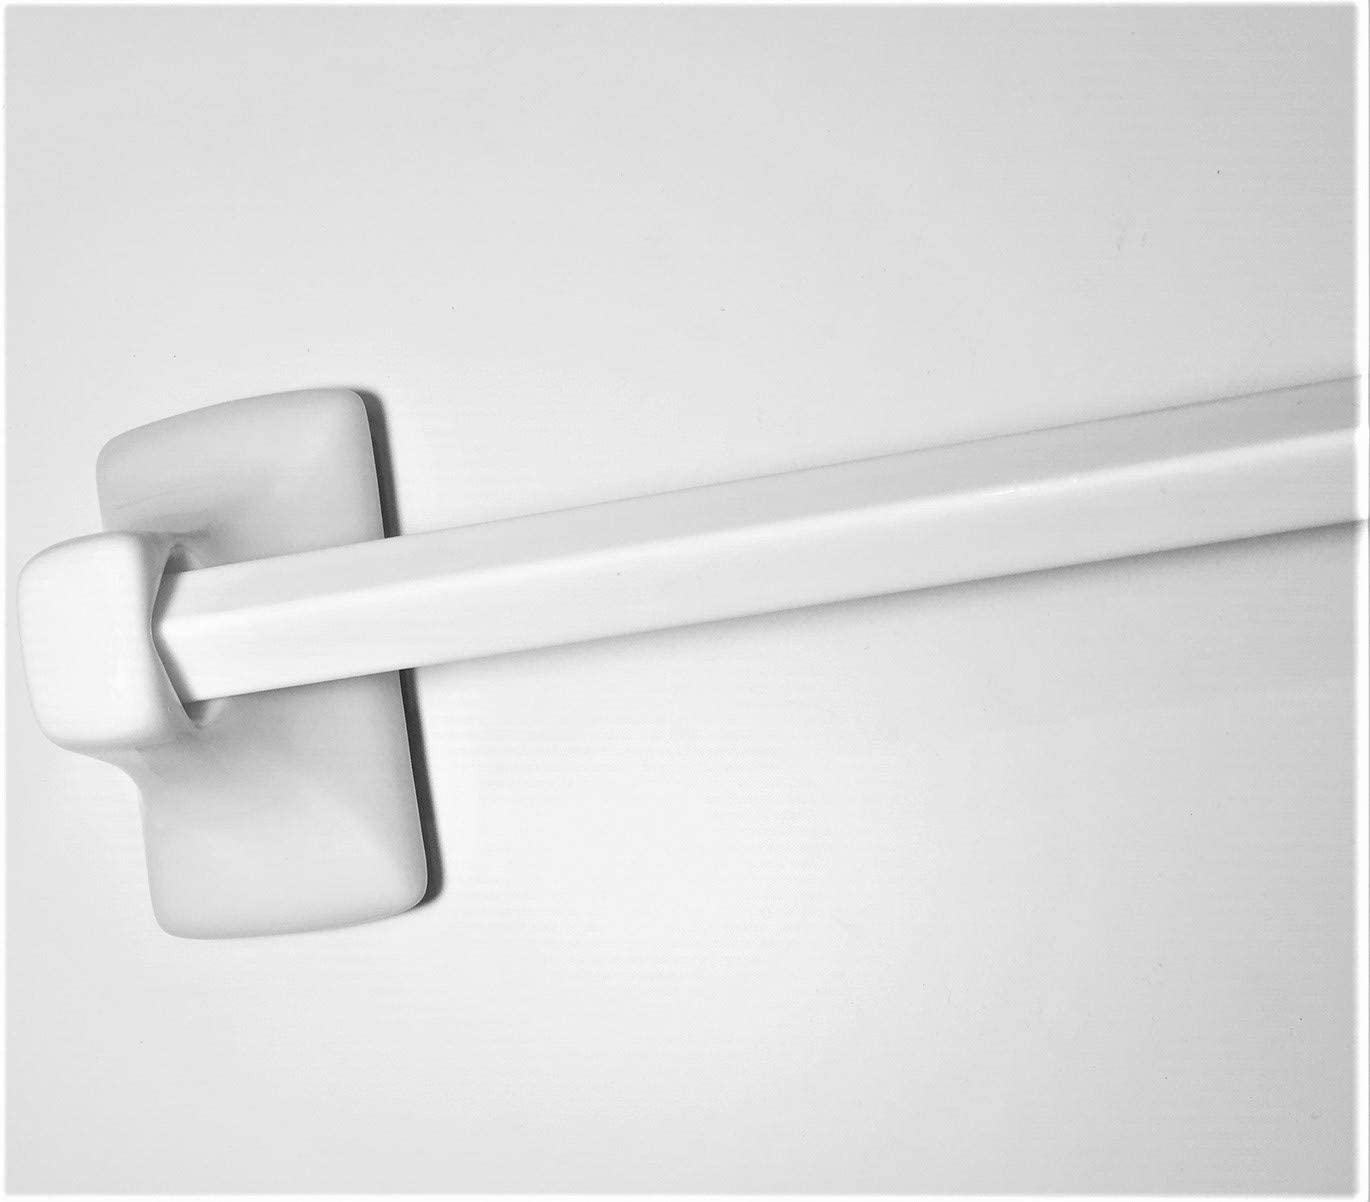 Squarefeet Depot 24 Towel Bar White Glazed Ceramic Tub Shower Bath Accessories Wall Bath Thinset Or Adhesive Mount No Need For Hardware It Is Not Self Adhesive Home Kitchen